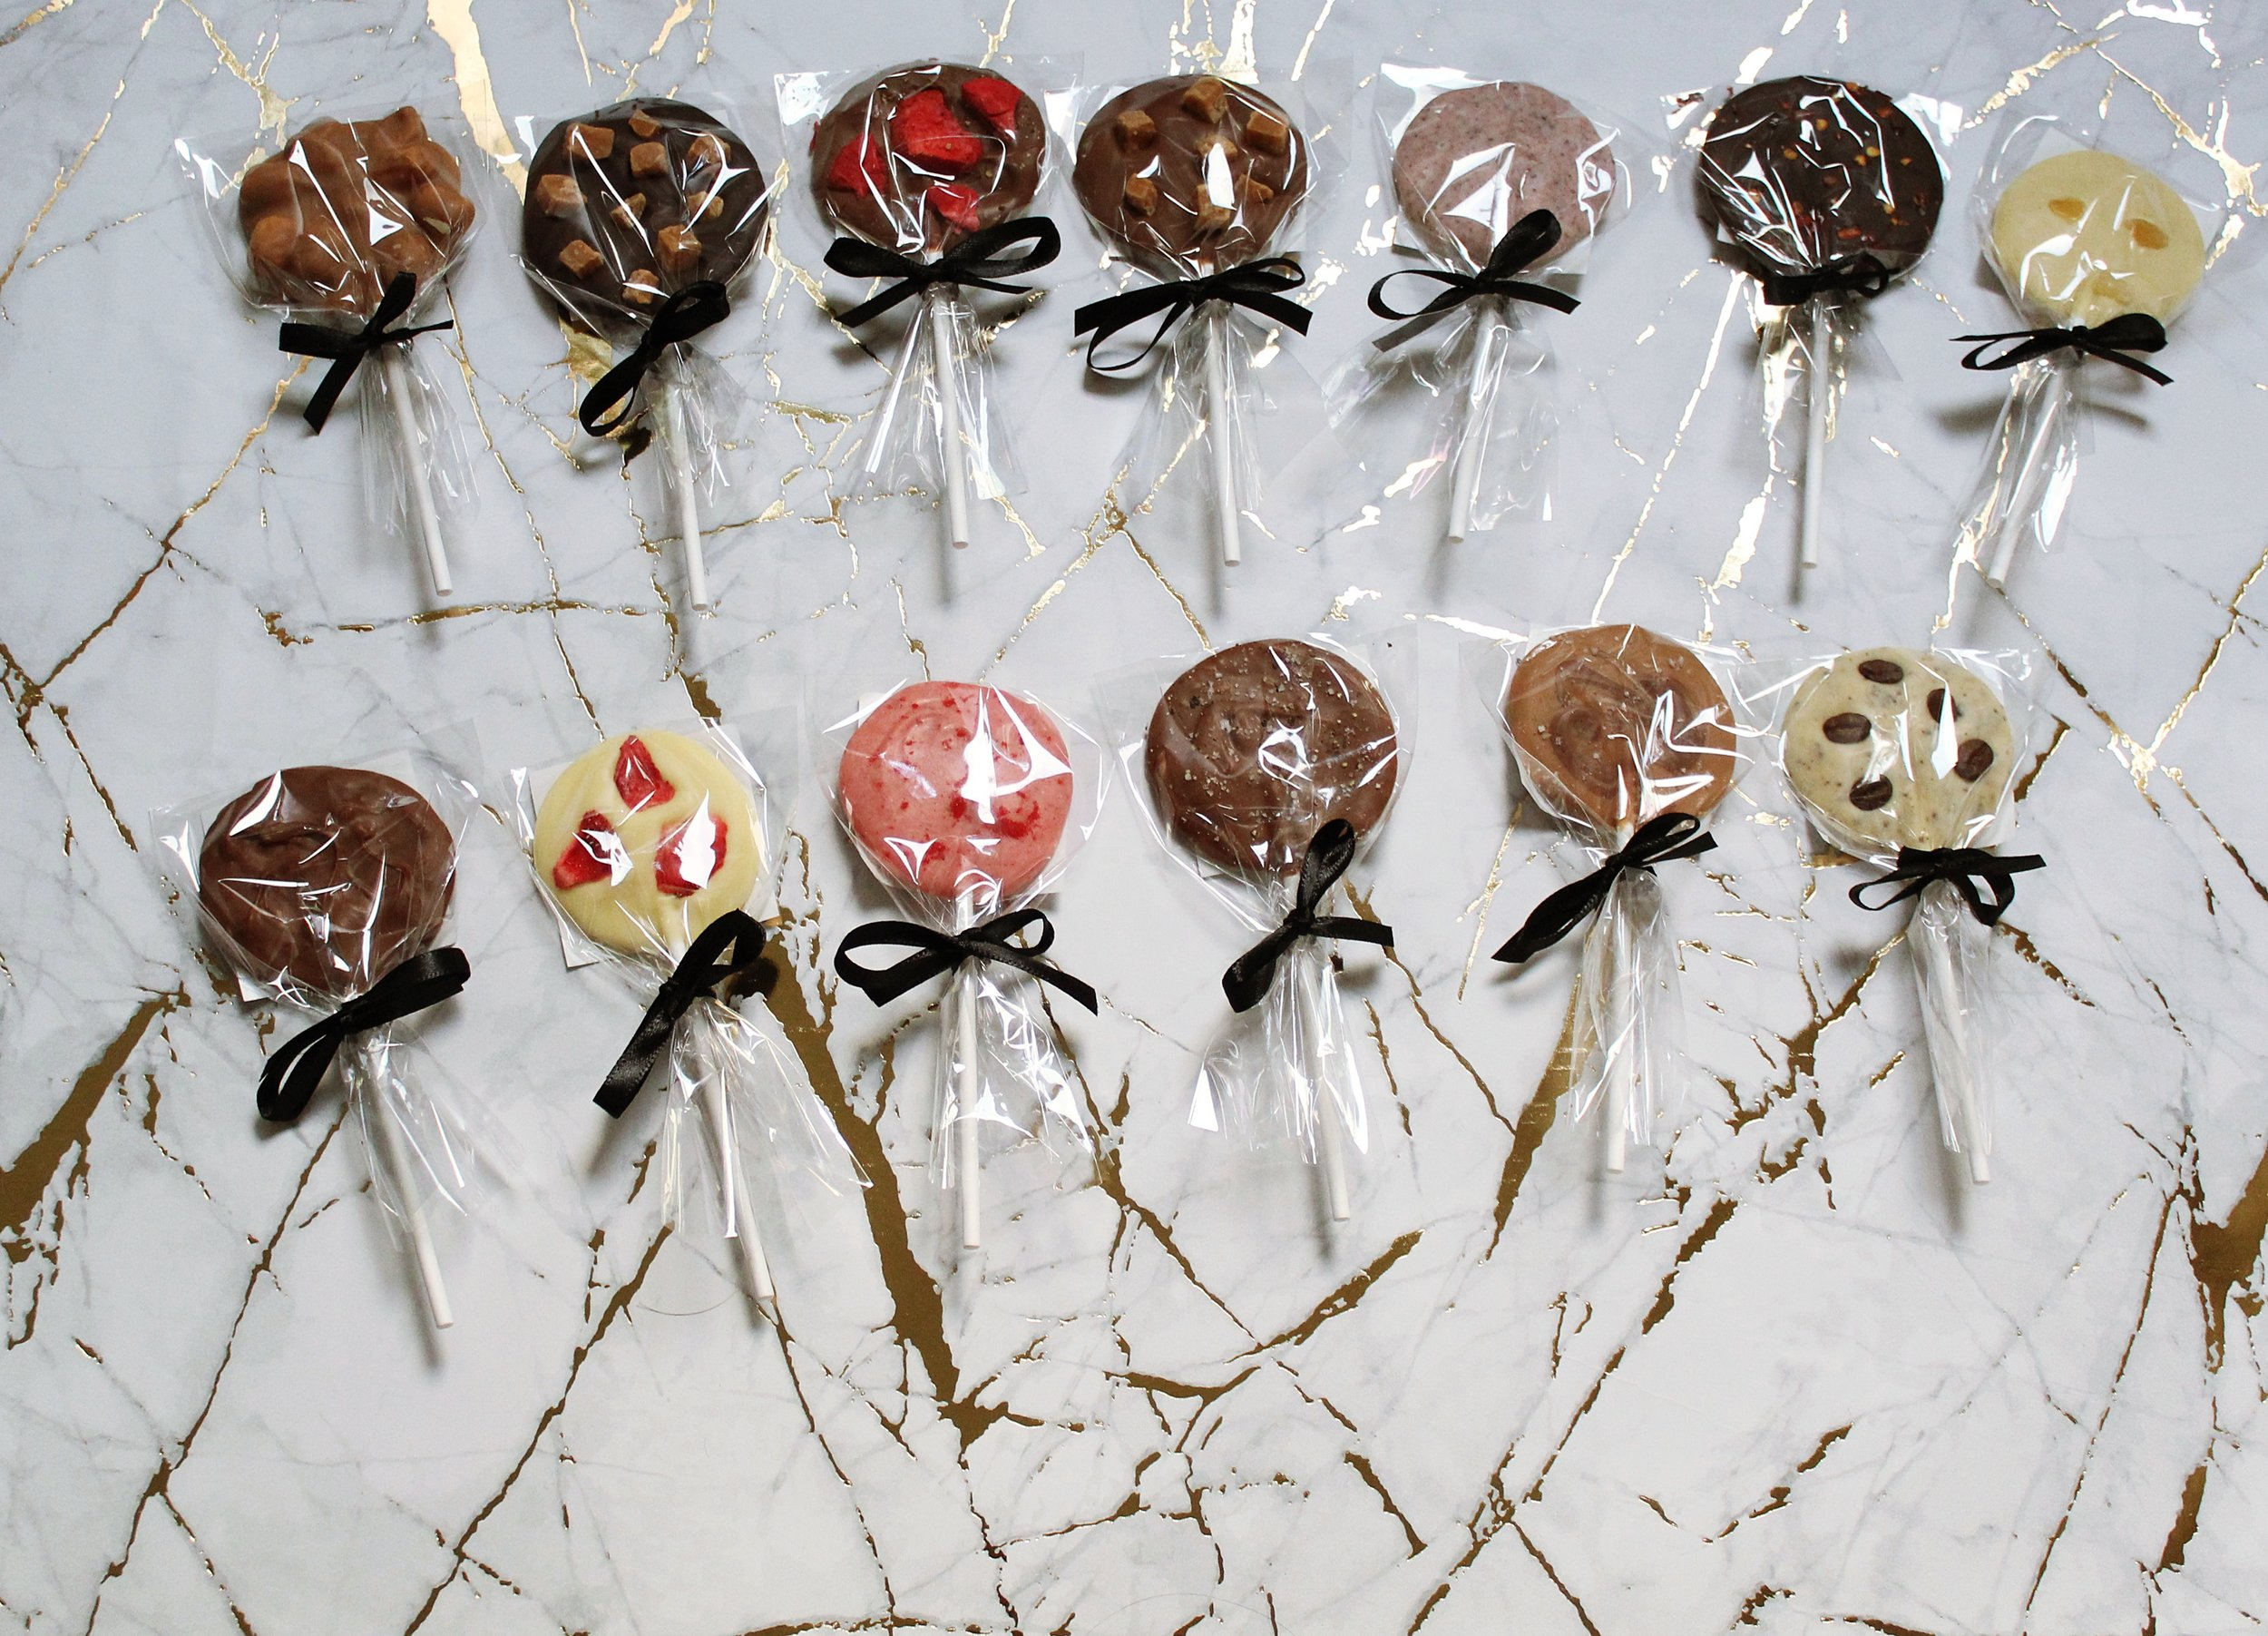 30g Chocolate Lollies